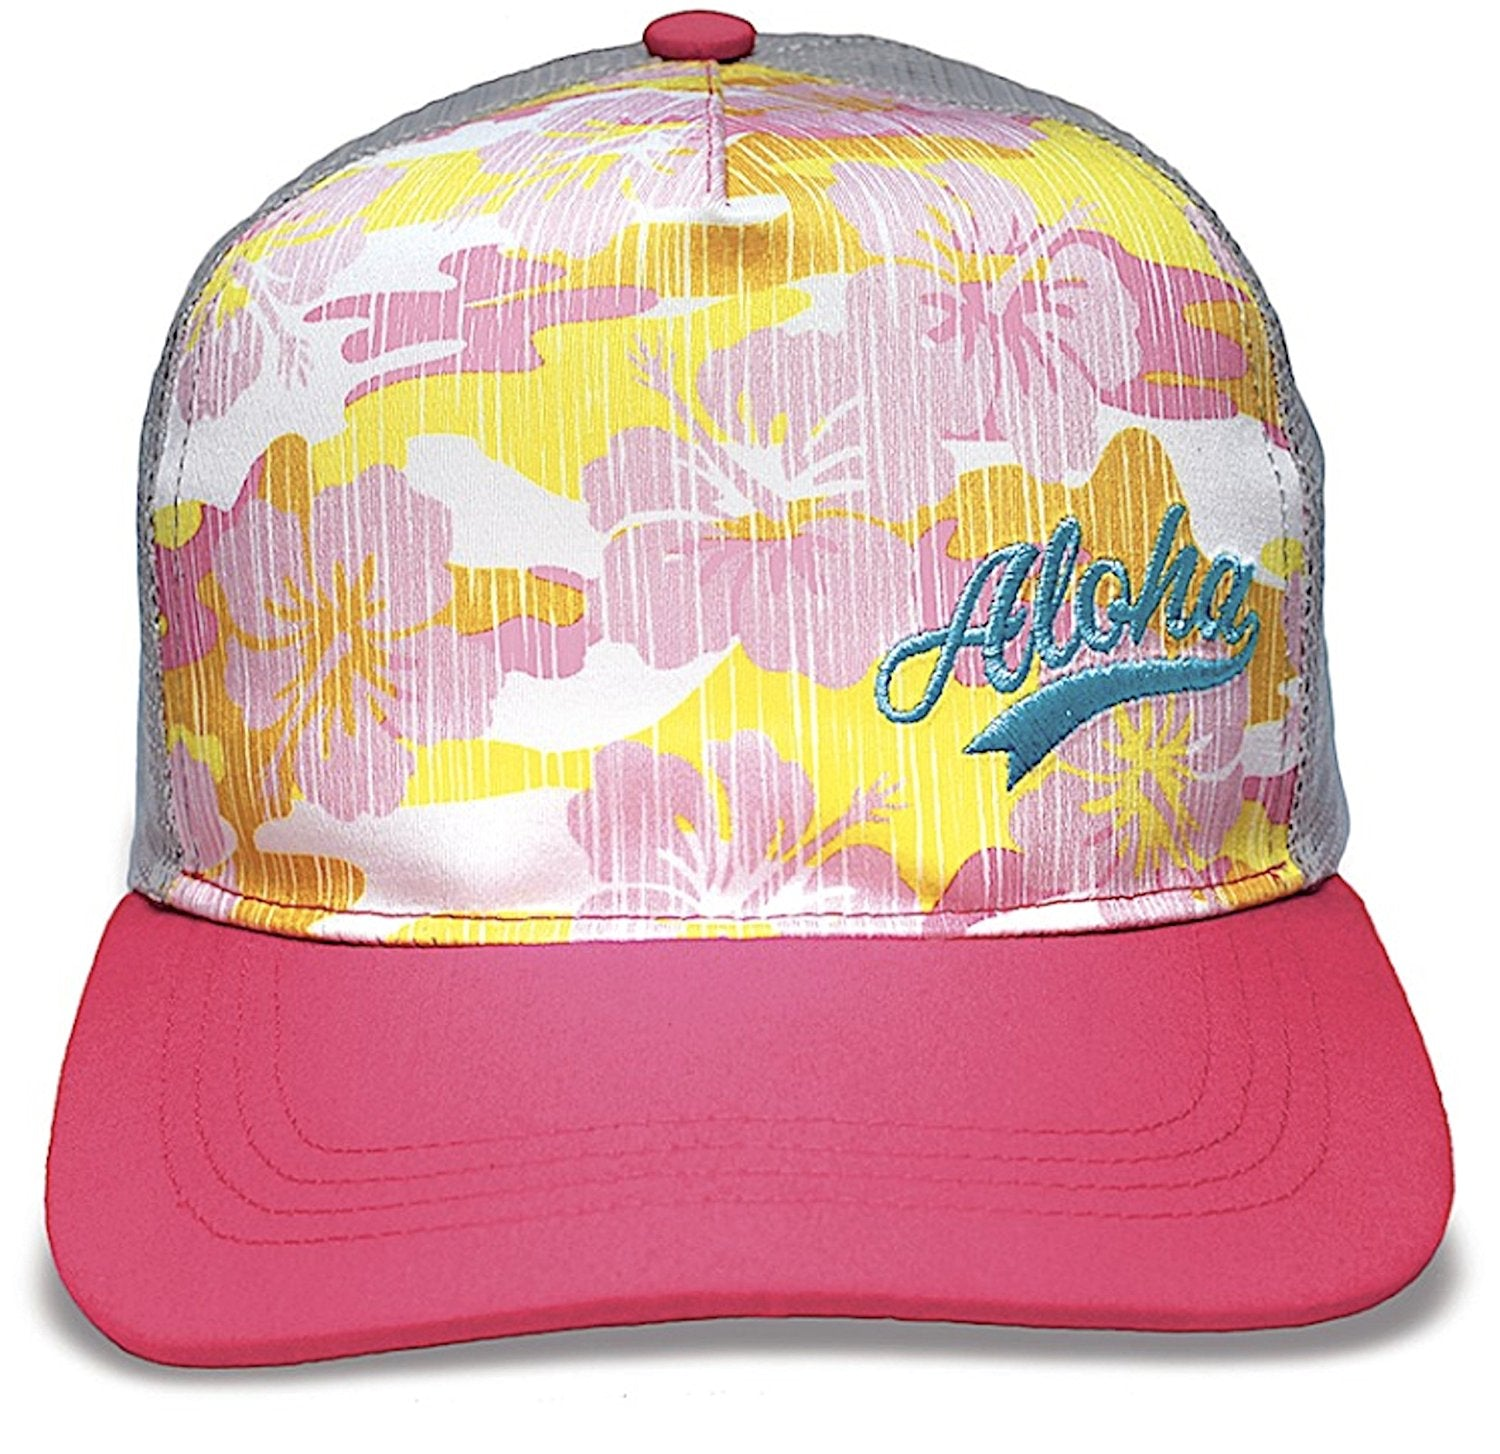 Island Caps Hawaiian Inspired Flat Brimmed Hats (Choose from Multiple  Designs) 0e63c03ce4f4